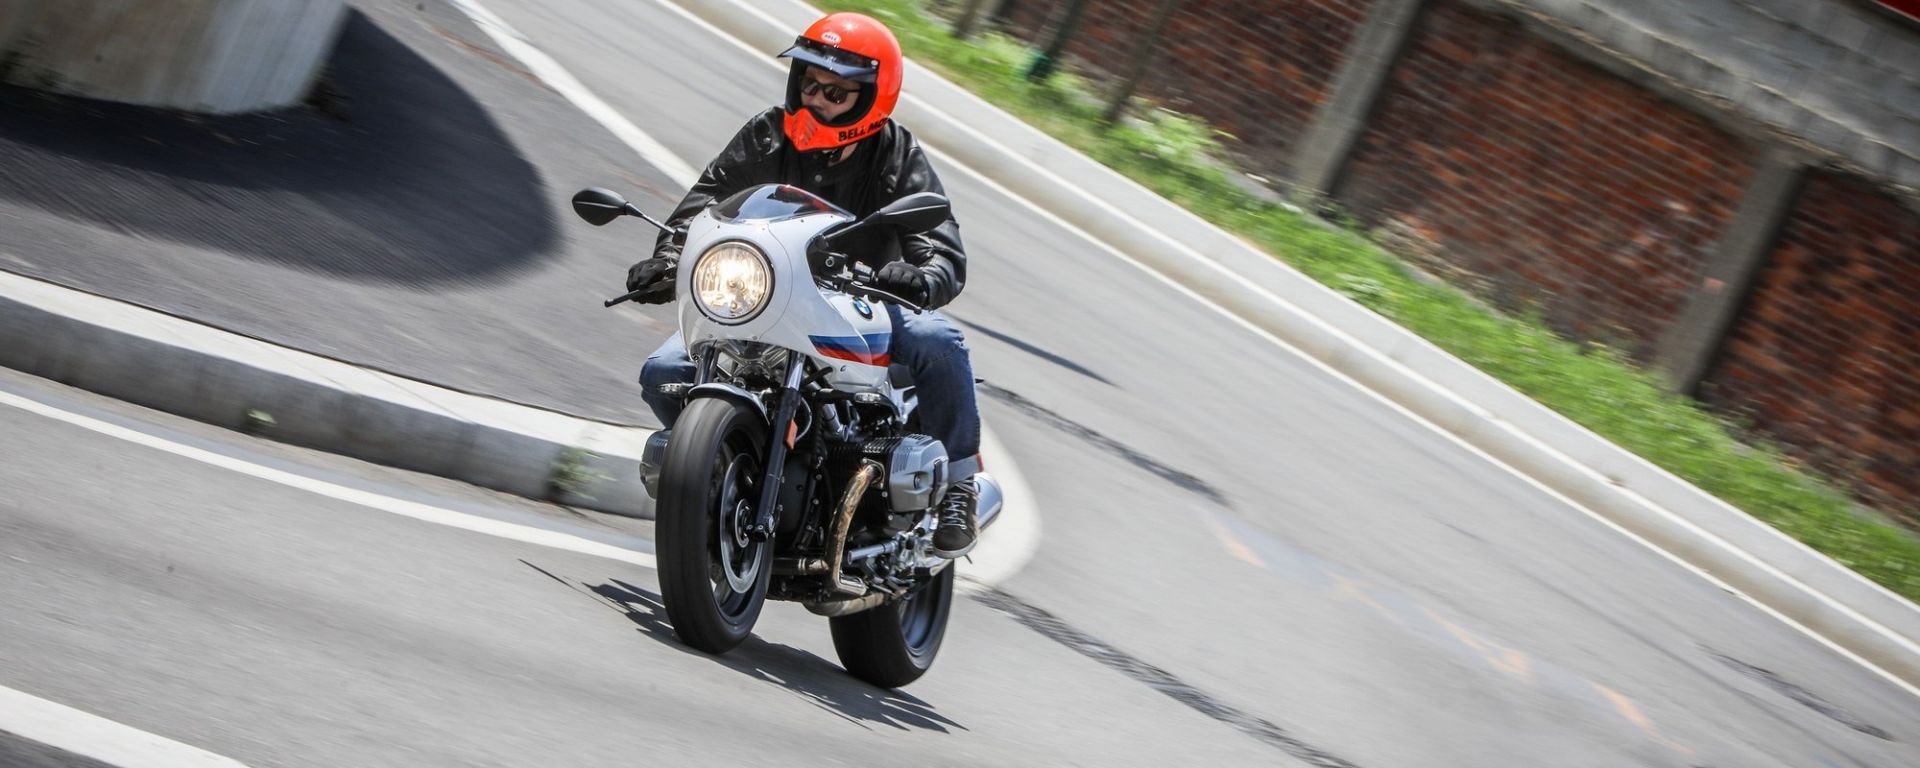 BMW R nineT Racer: il test ride